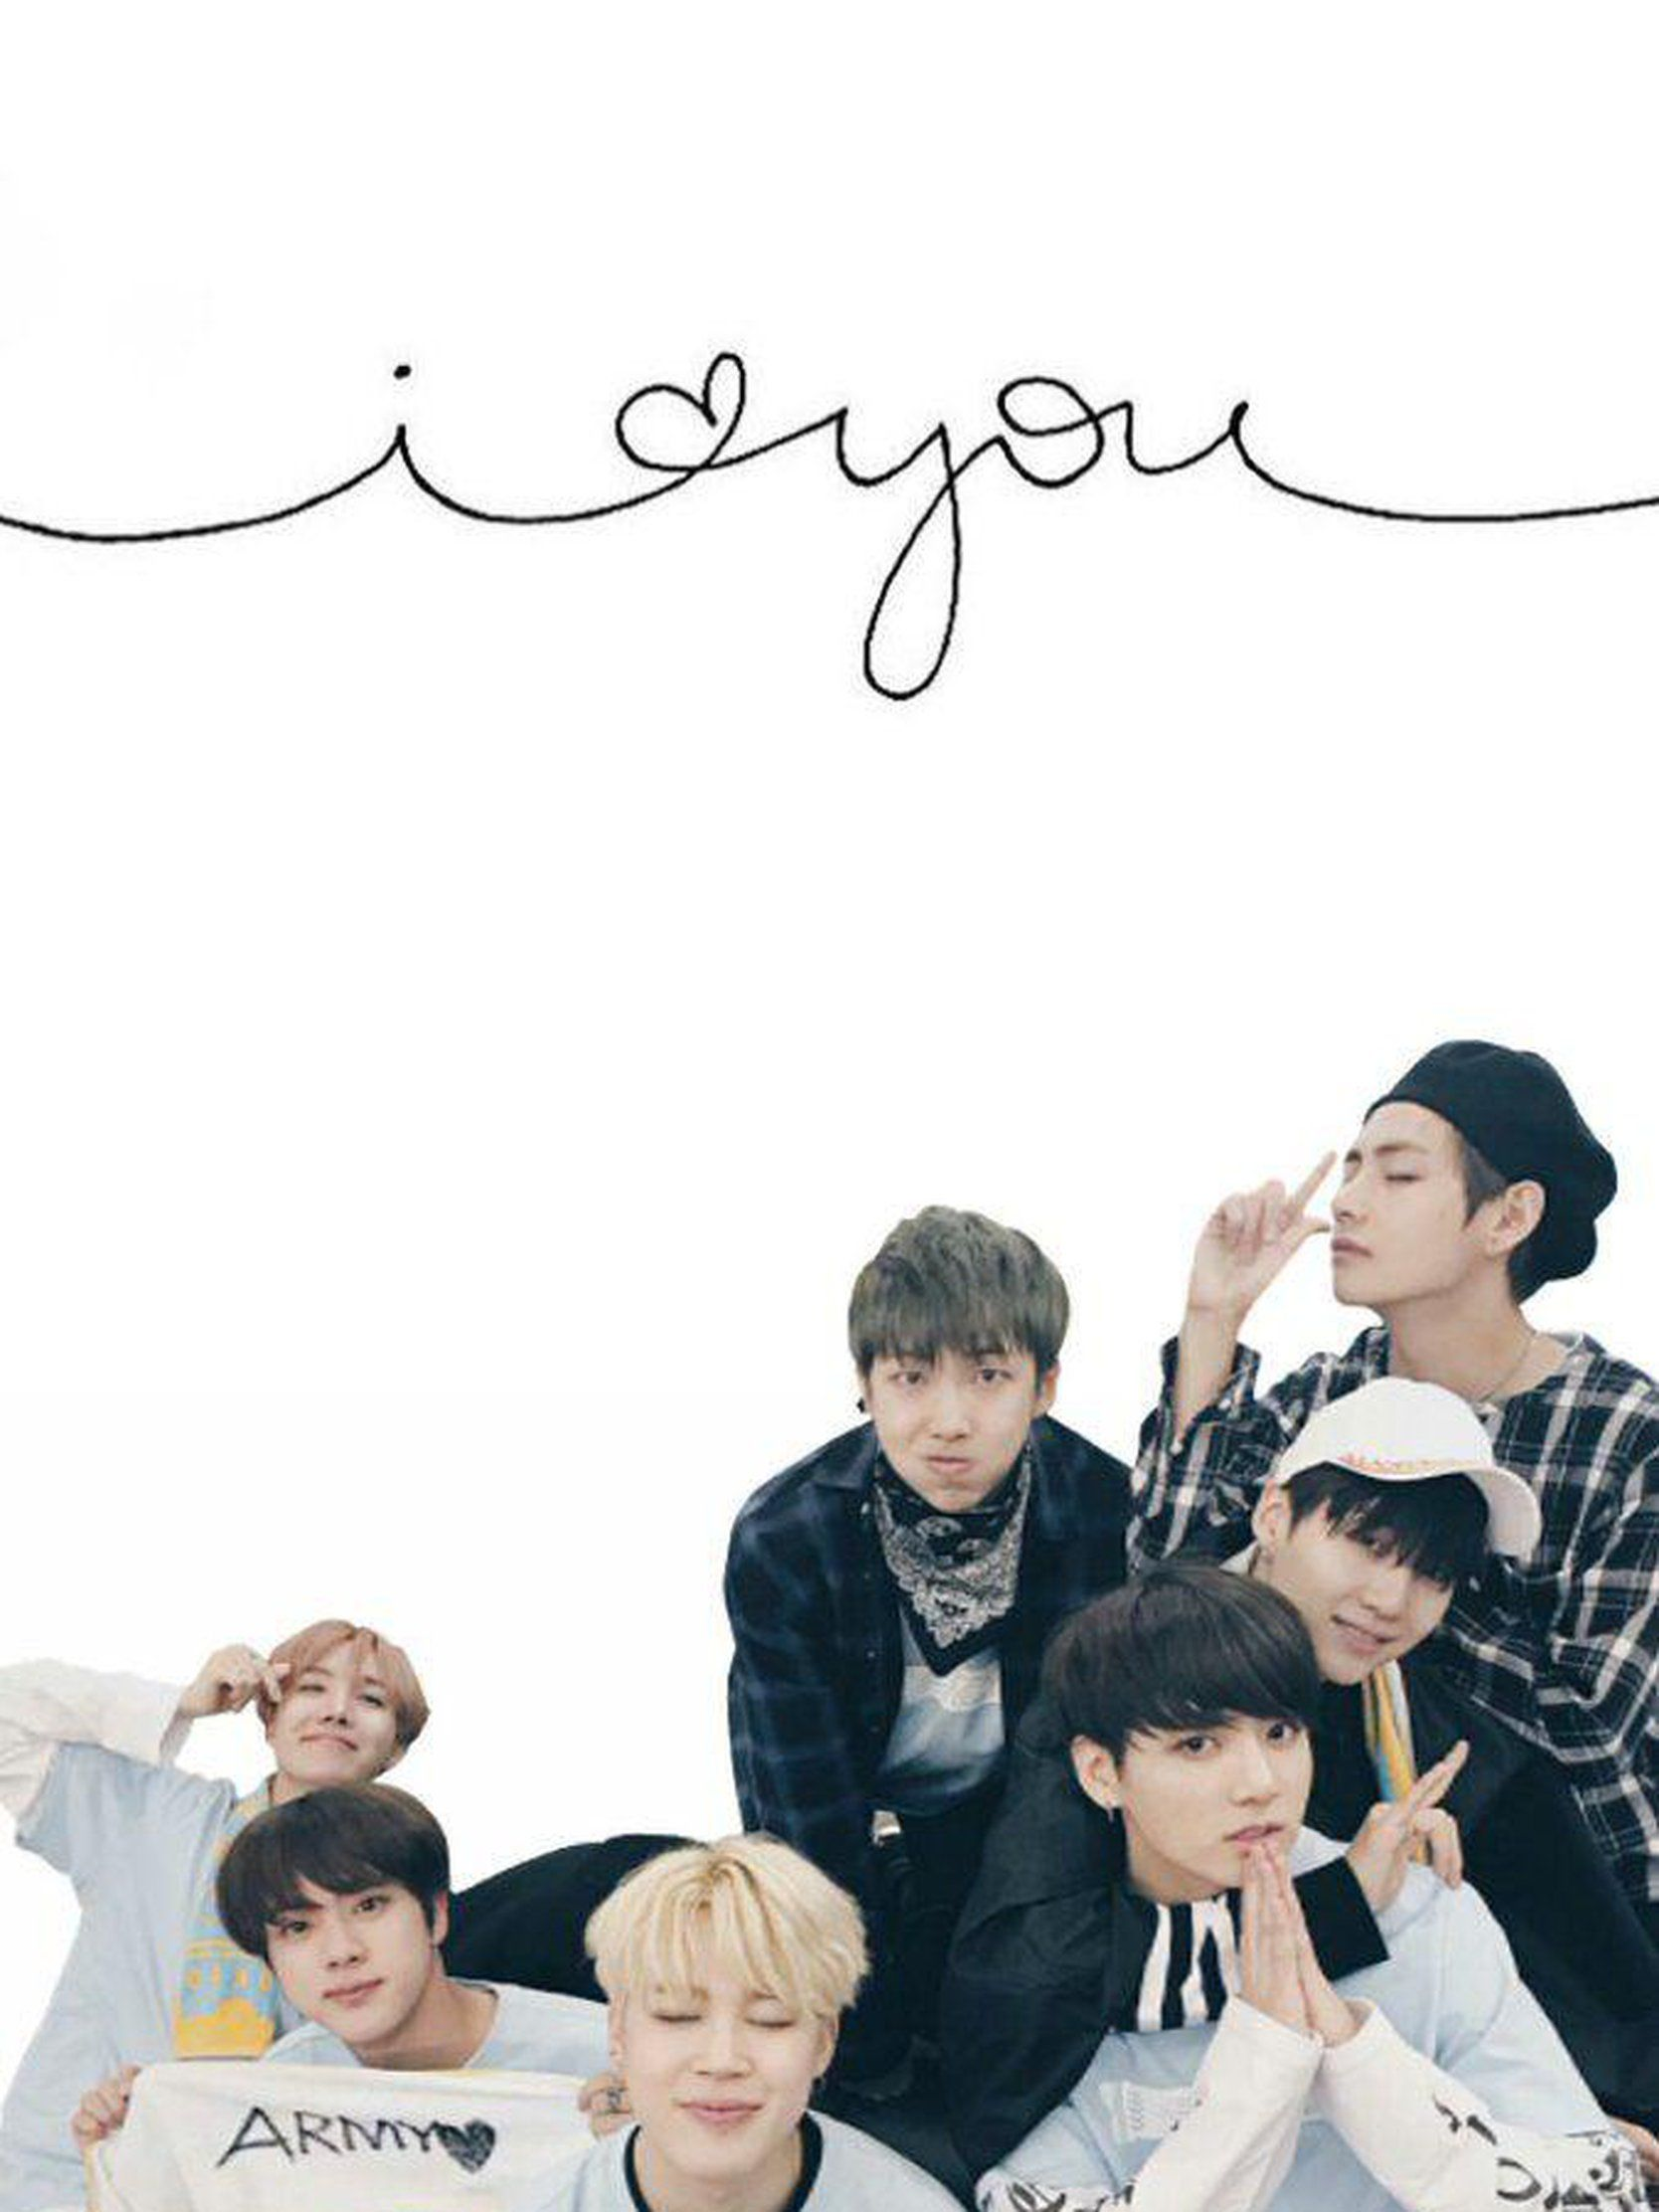 Bts Ipad Wallpapers Top Free Bts Ipad Backgrounds Wallpaperaccess